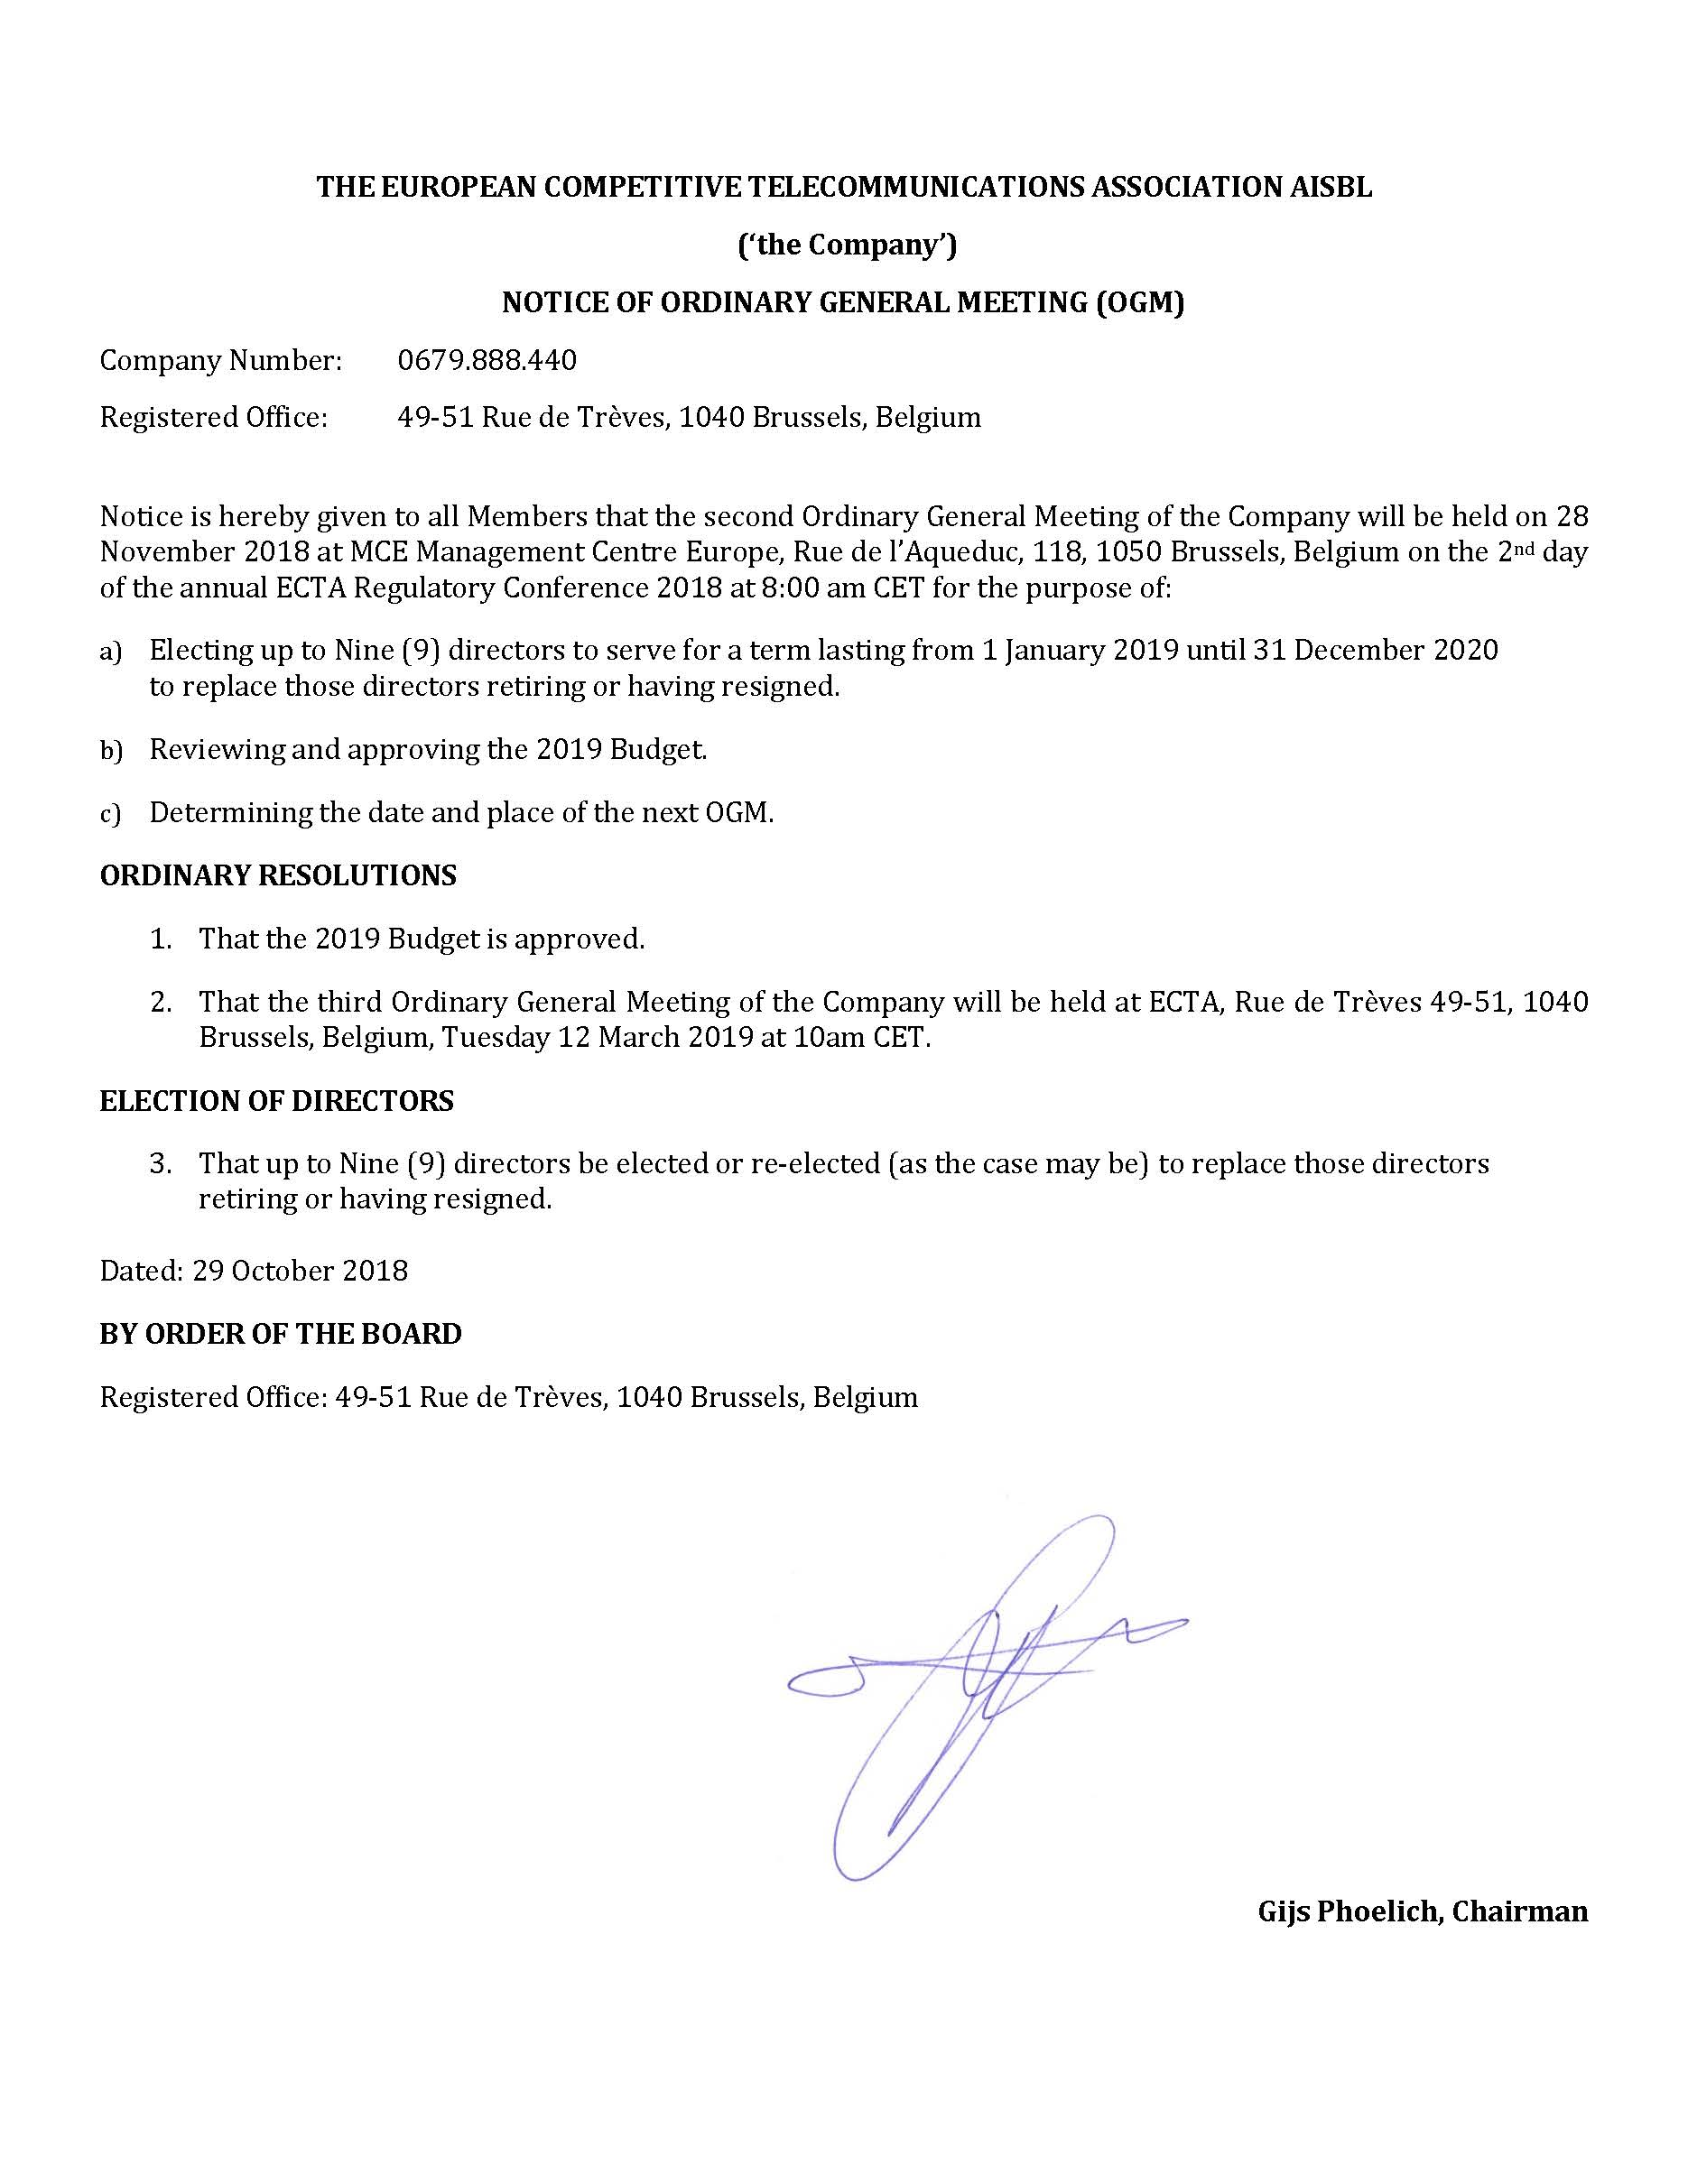 Notice of Ordinary General Meeting